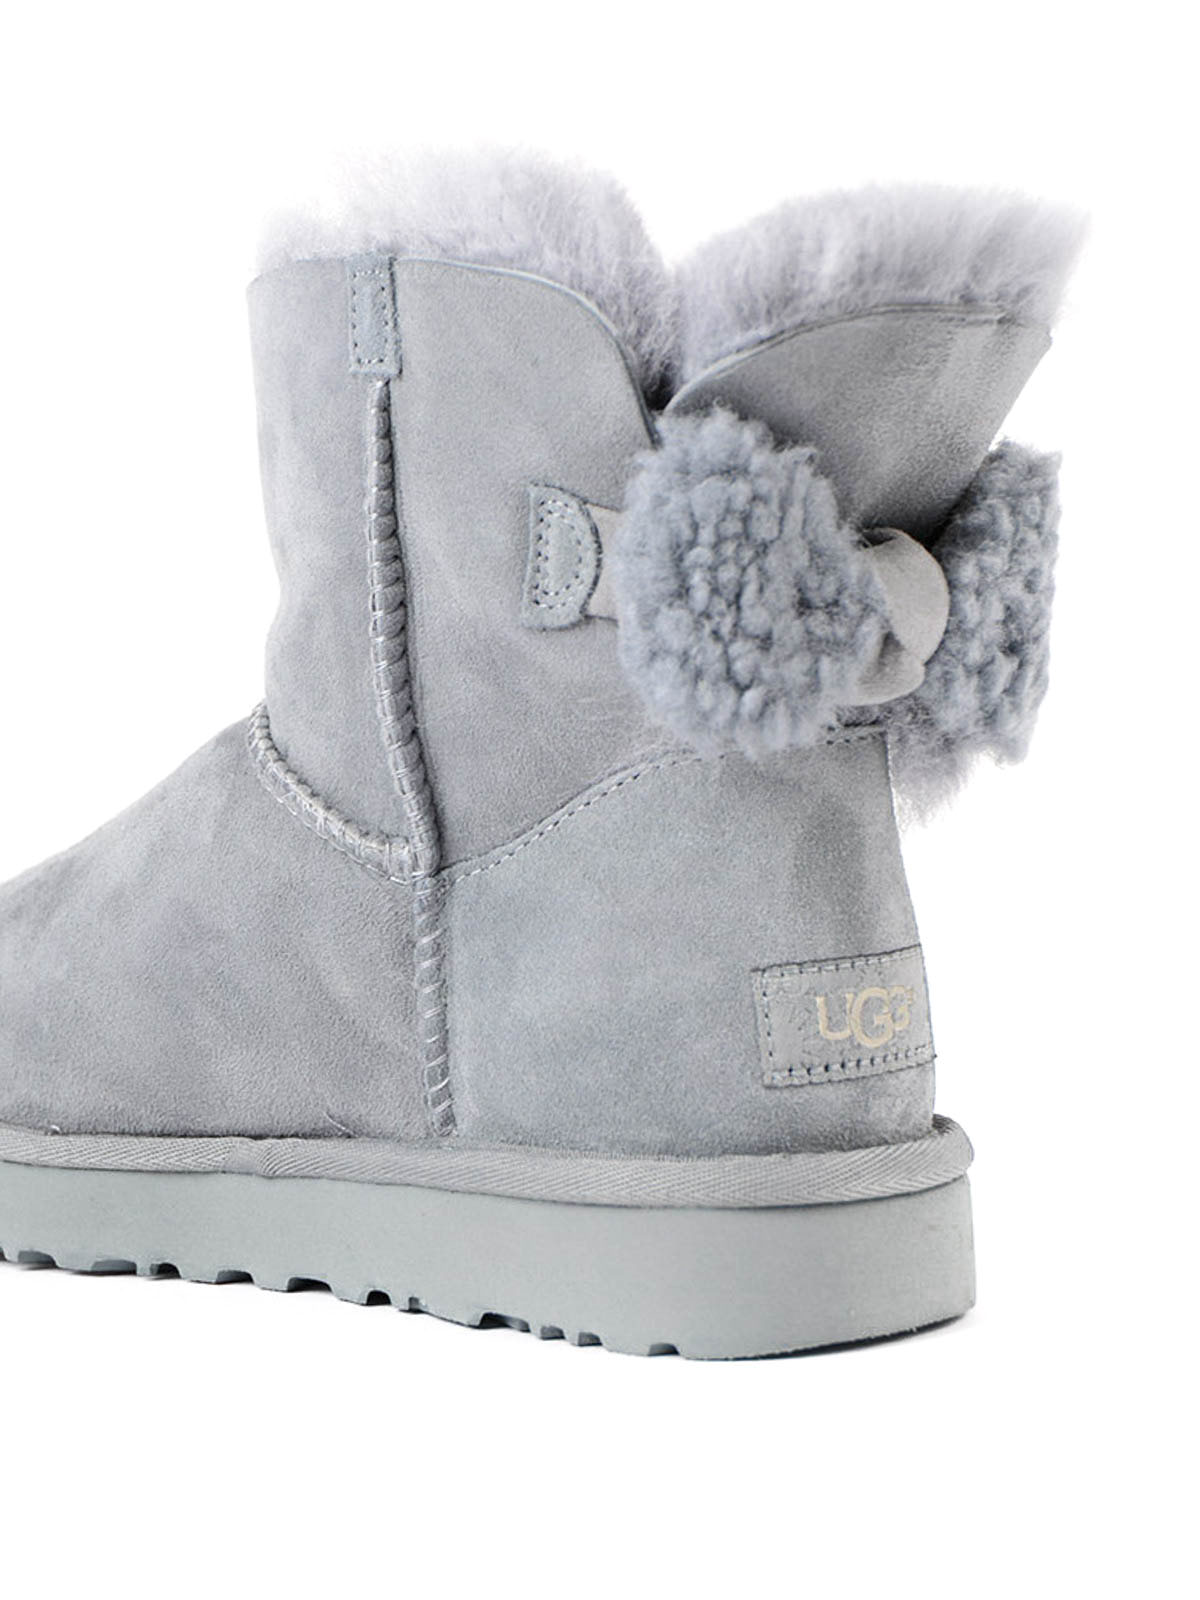 71309c4f577 Ugg - Arielle bow grey ankle boots - ankle boots - 1019625 ARIELLE ...